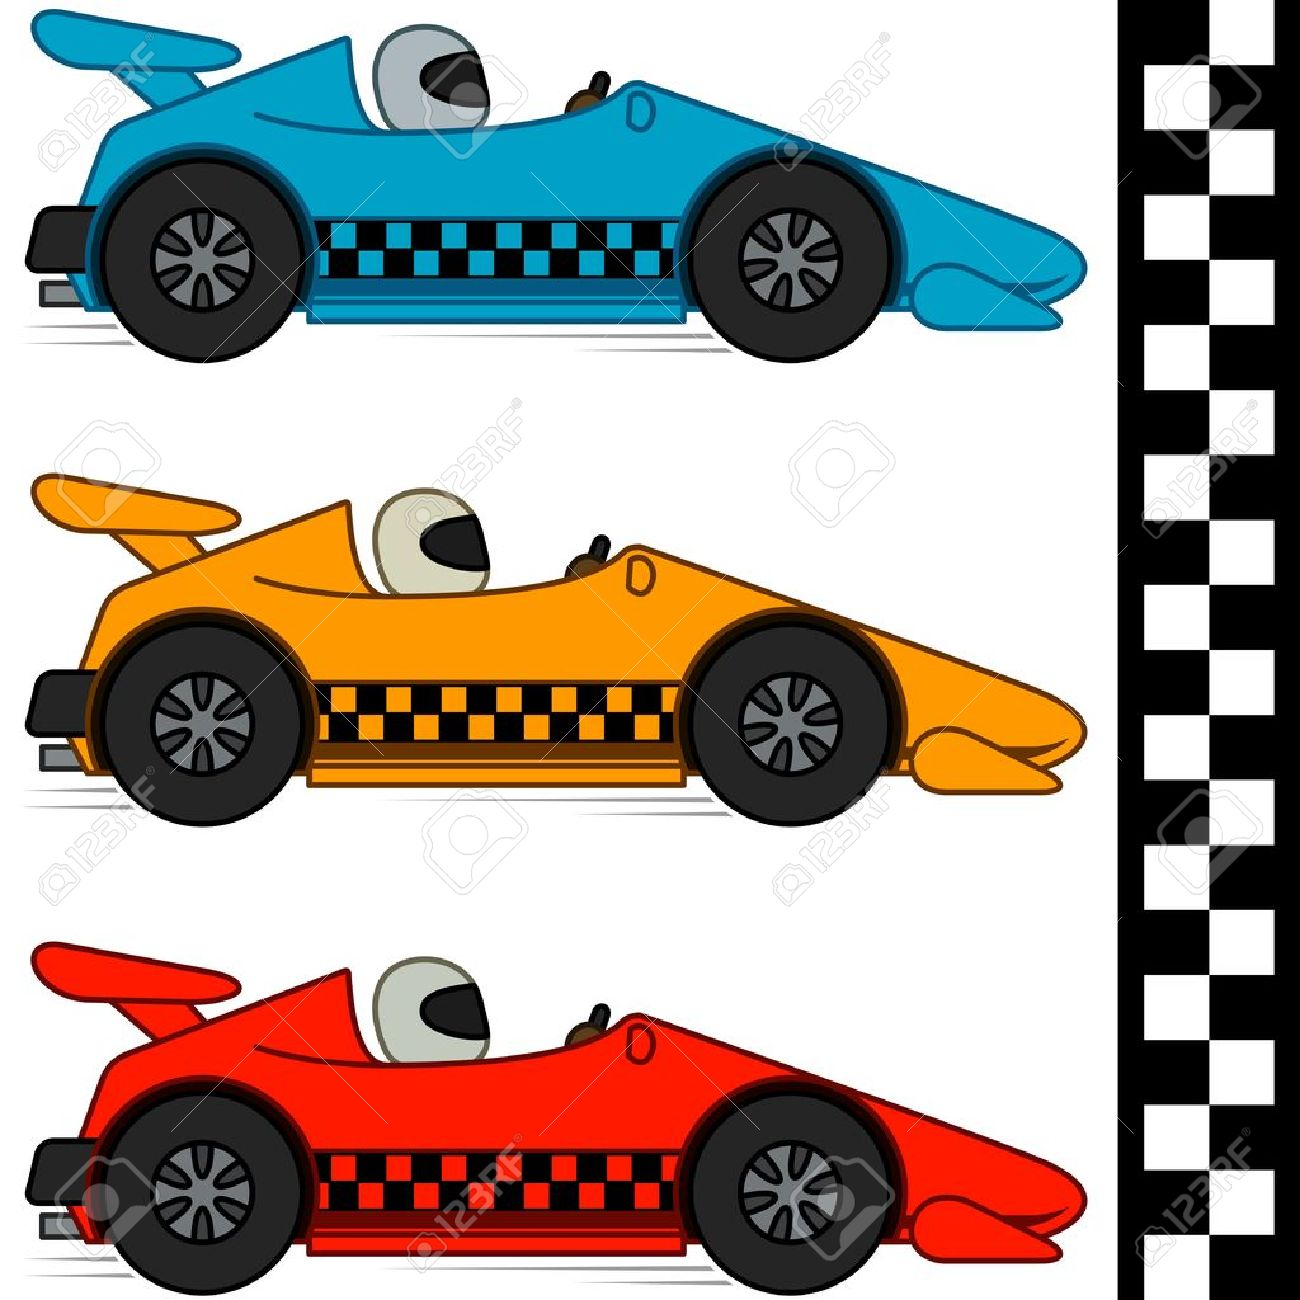 3,081 Racing Helmet Stock Vector Illustration And Royalty Free ...